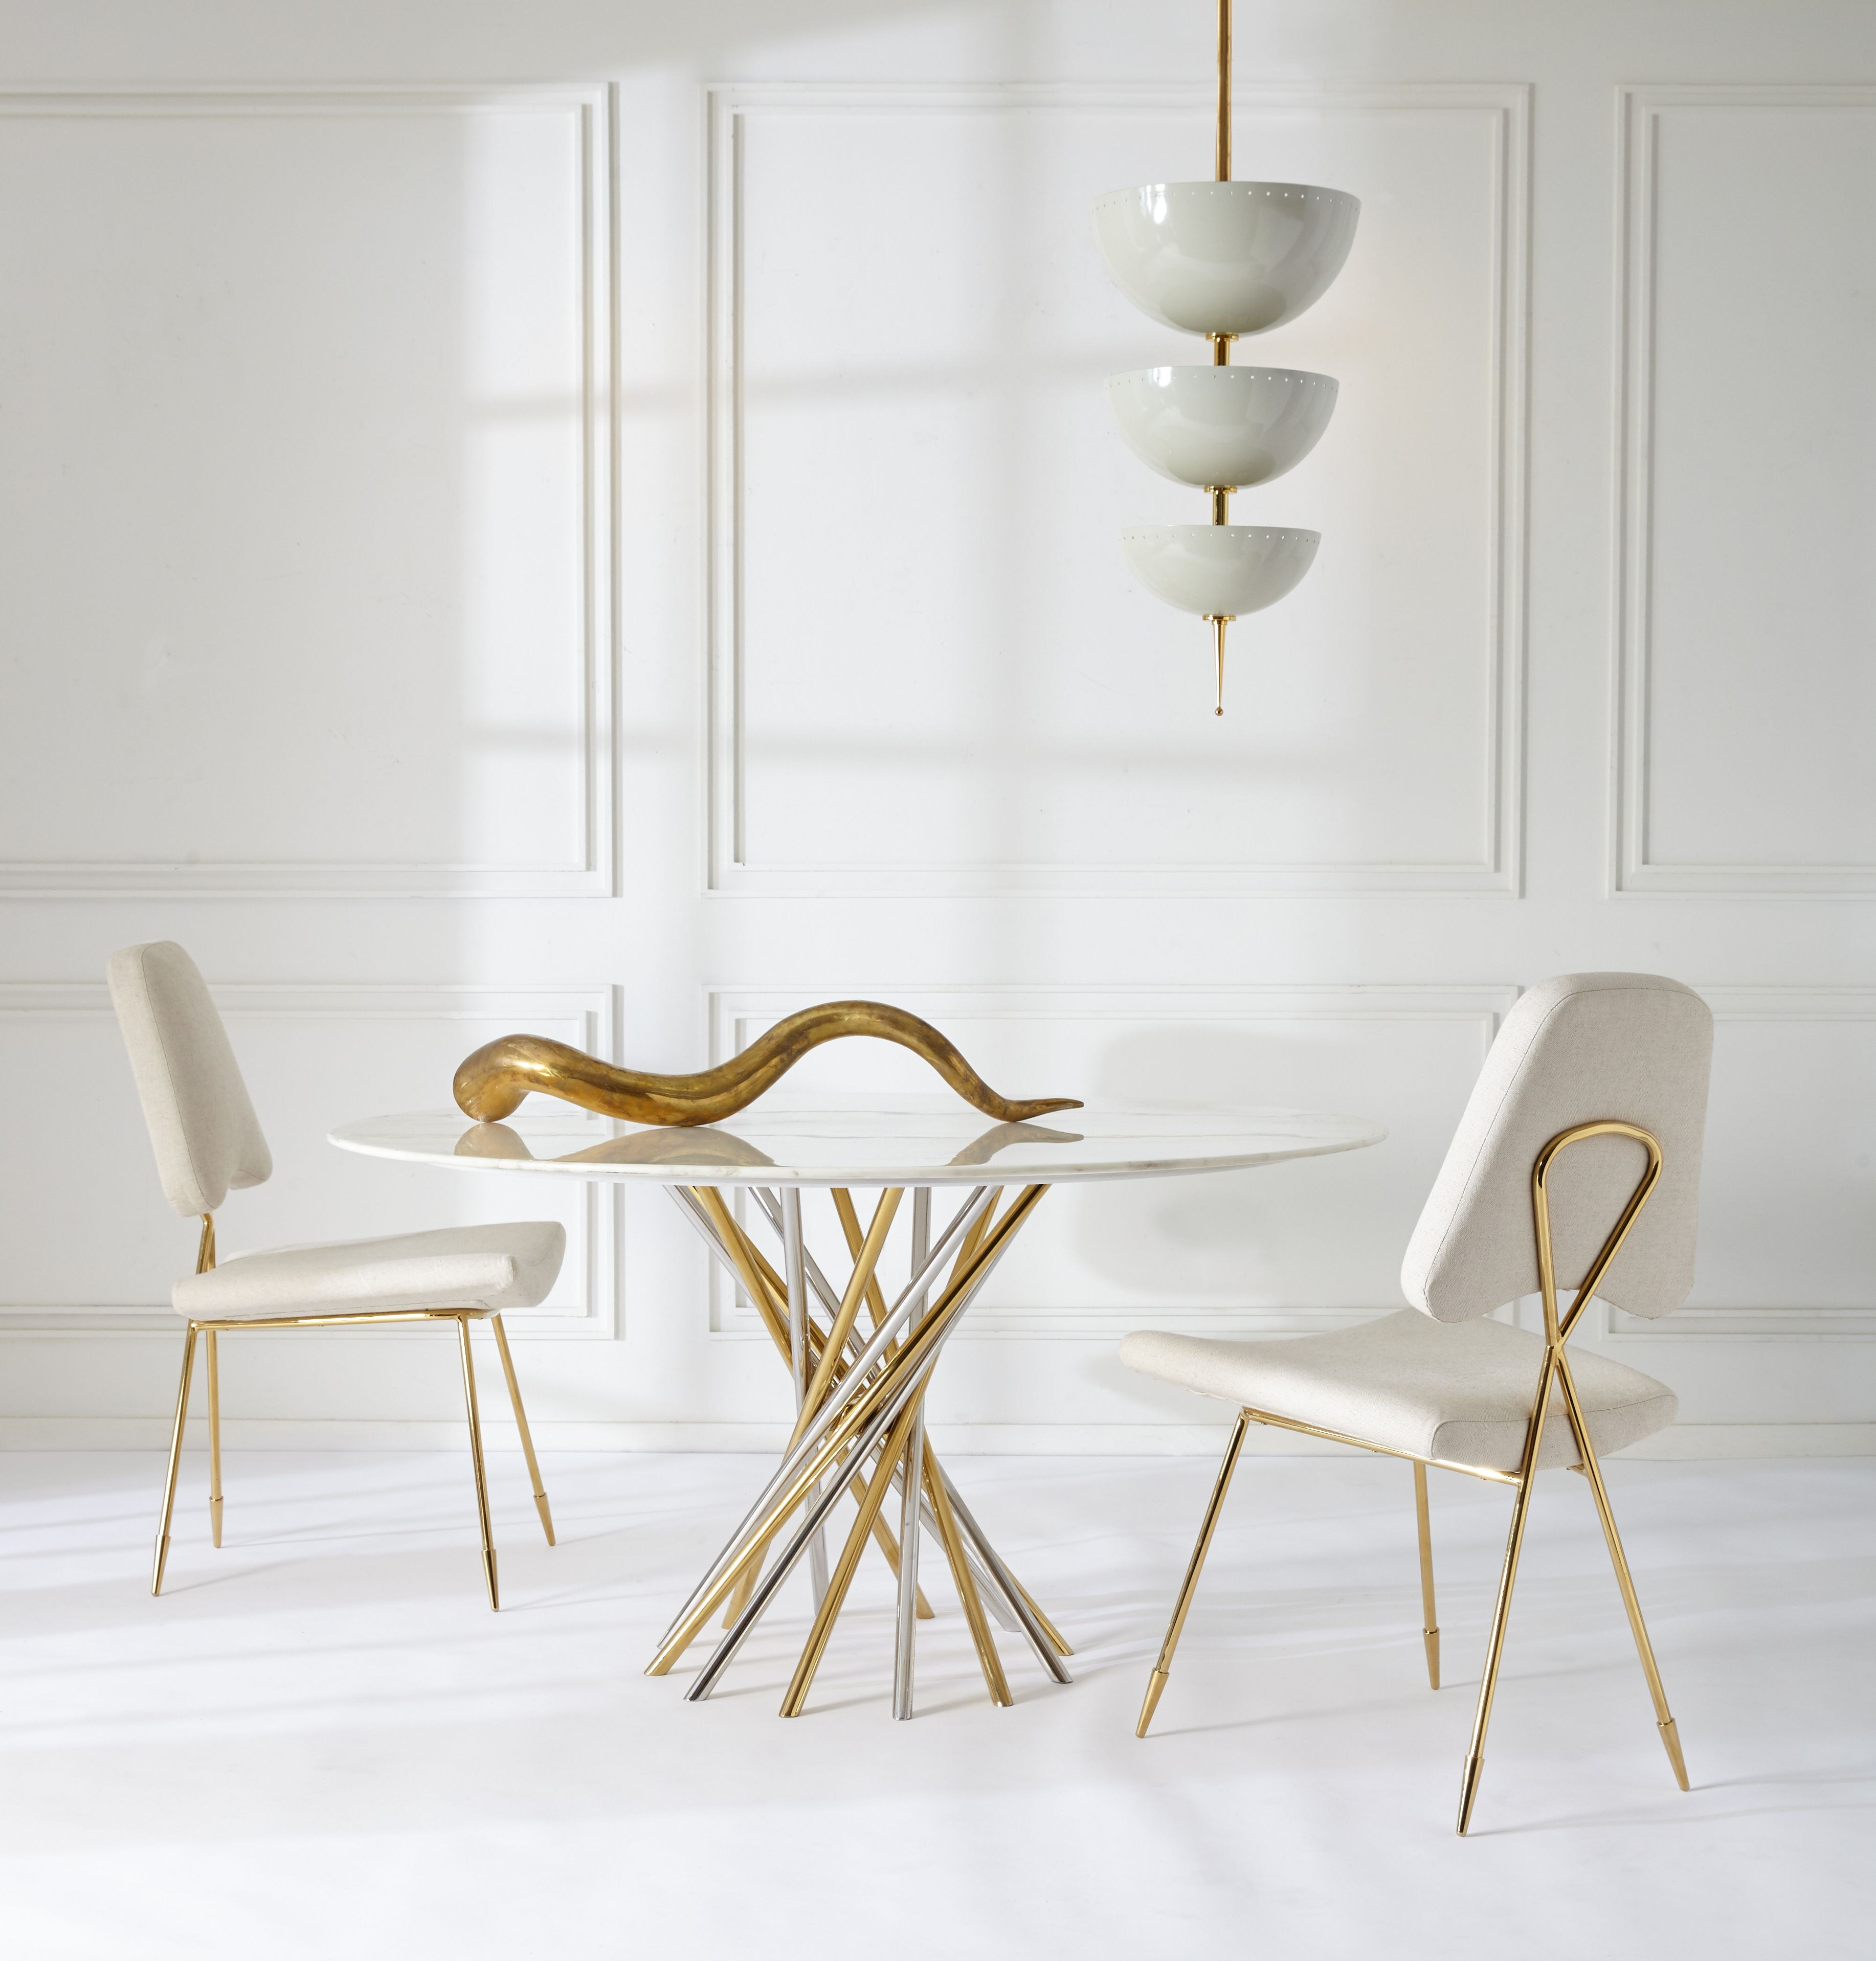 Our Electrum Dining Table Simple But Kinetic A Future Classic Luxury Dining Room Luxury Dining Tables Dining Room Design